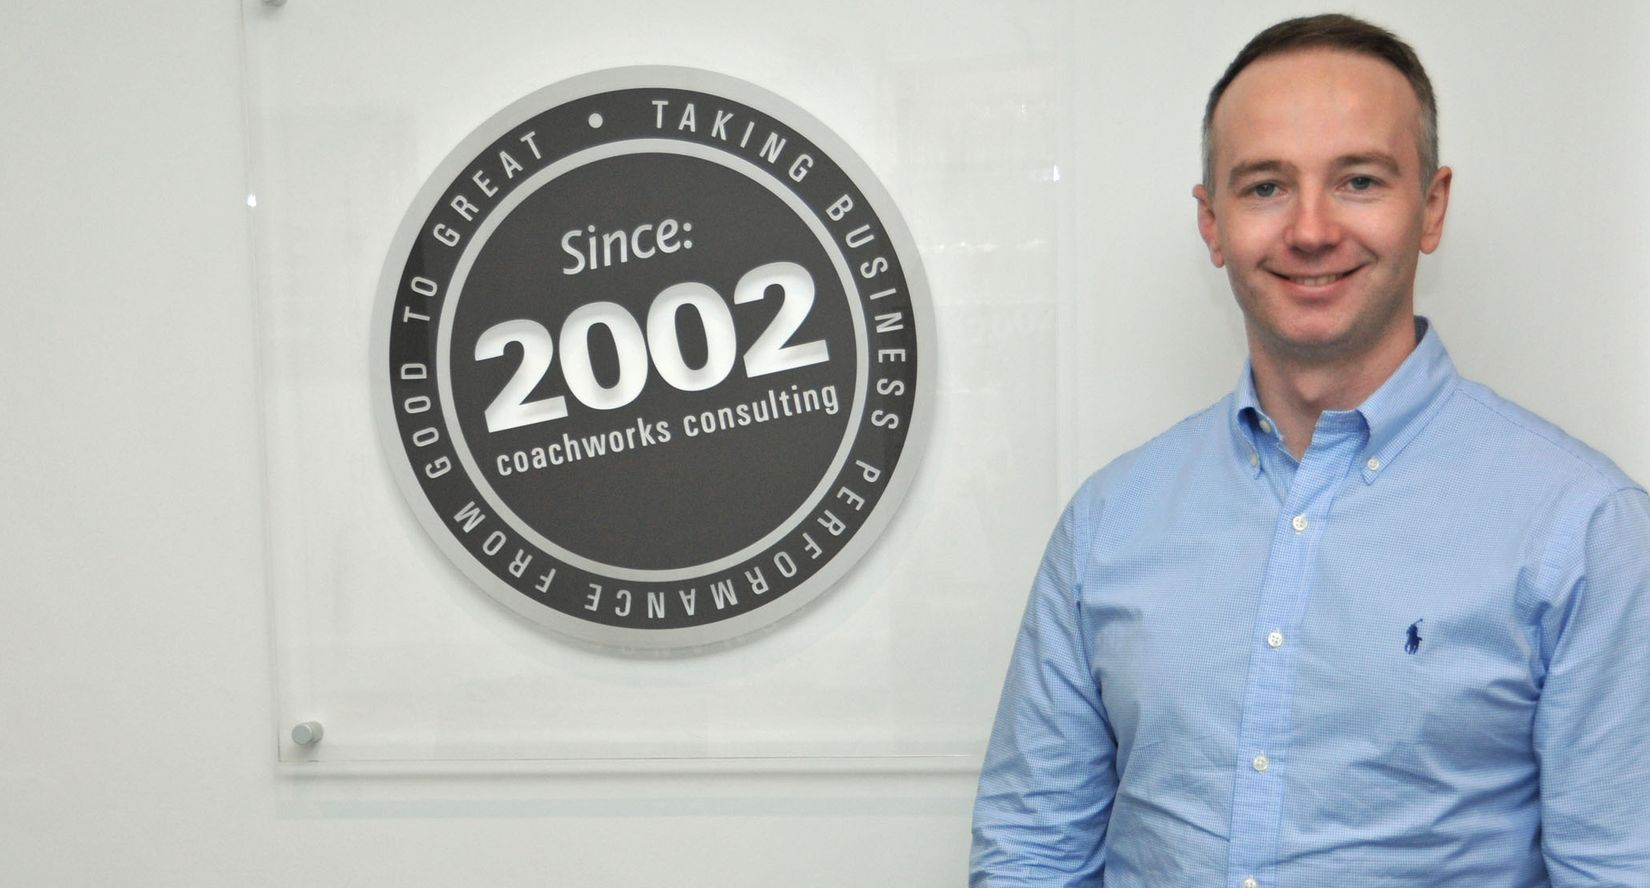 Martin Riddell promoted to Account Director at Coachworks Consulting